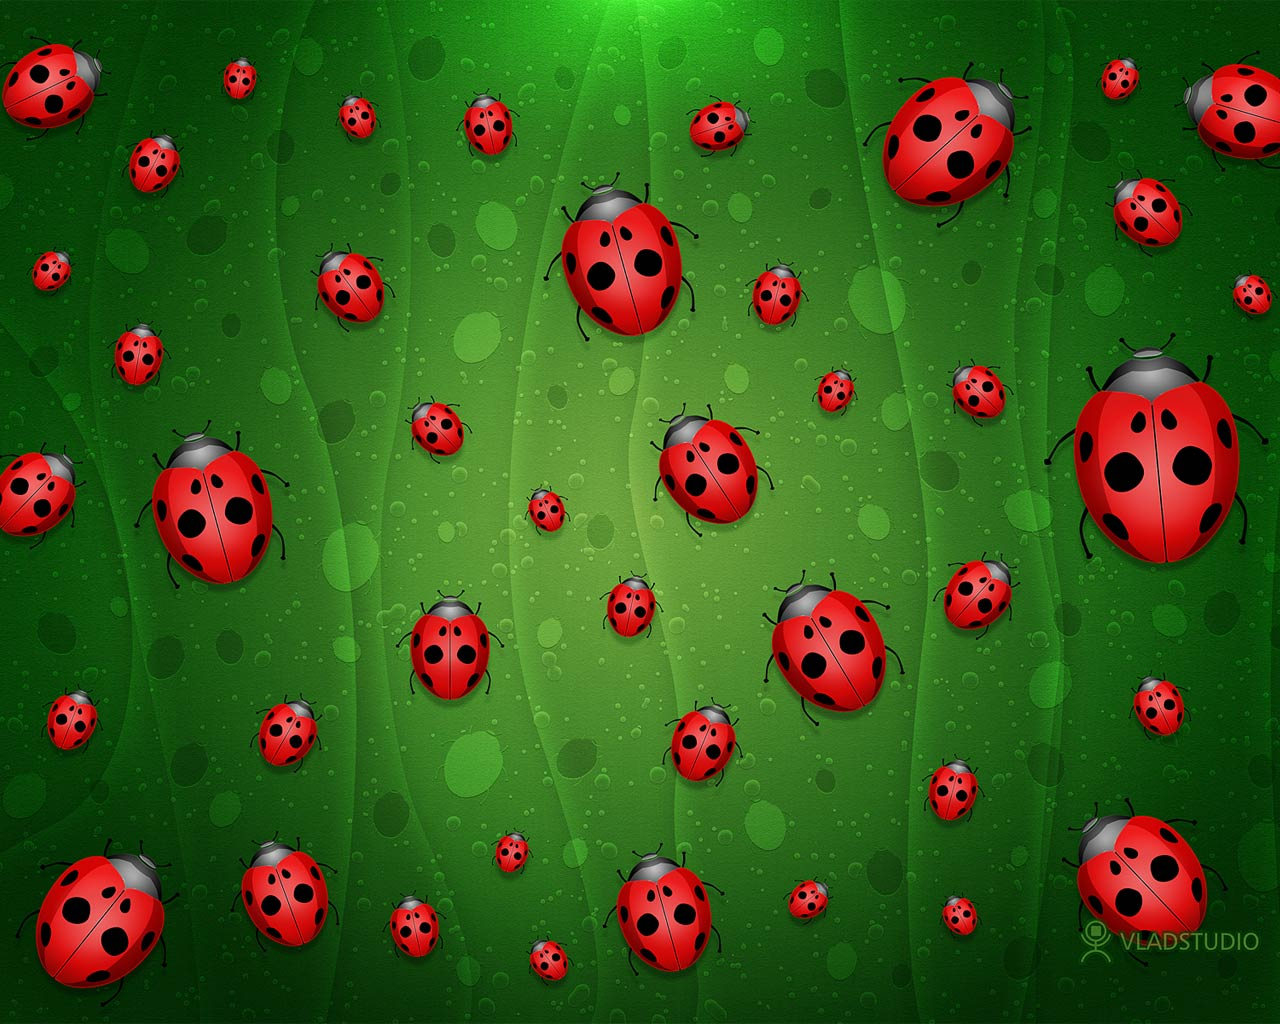 All is Full of Ladybugs 3d обои